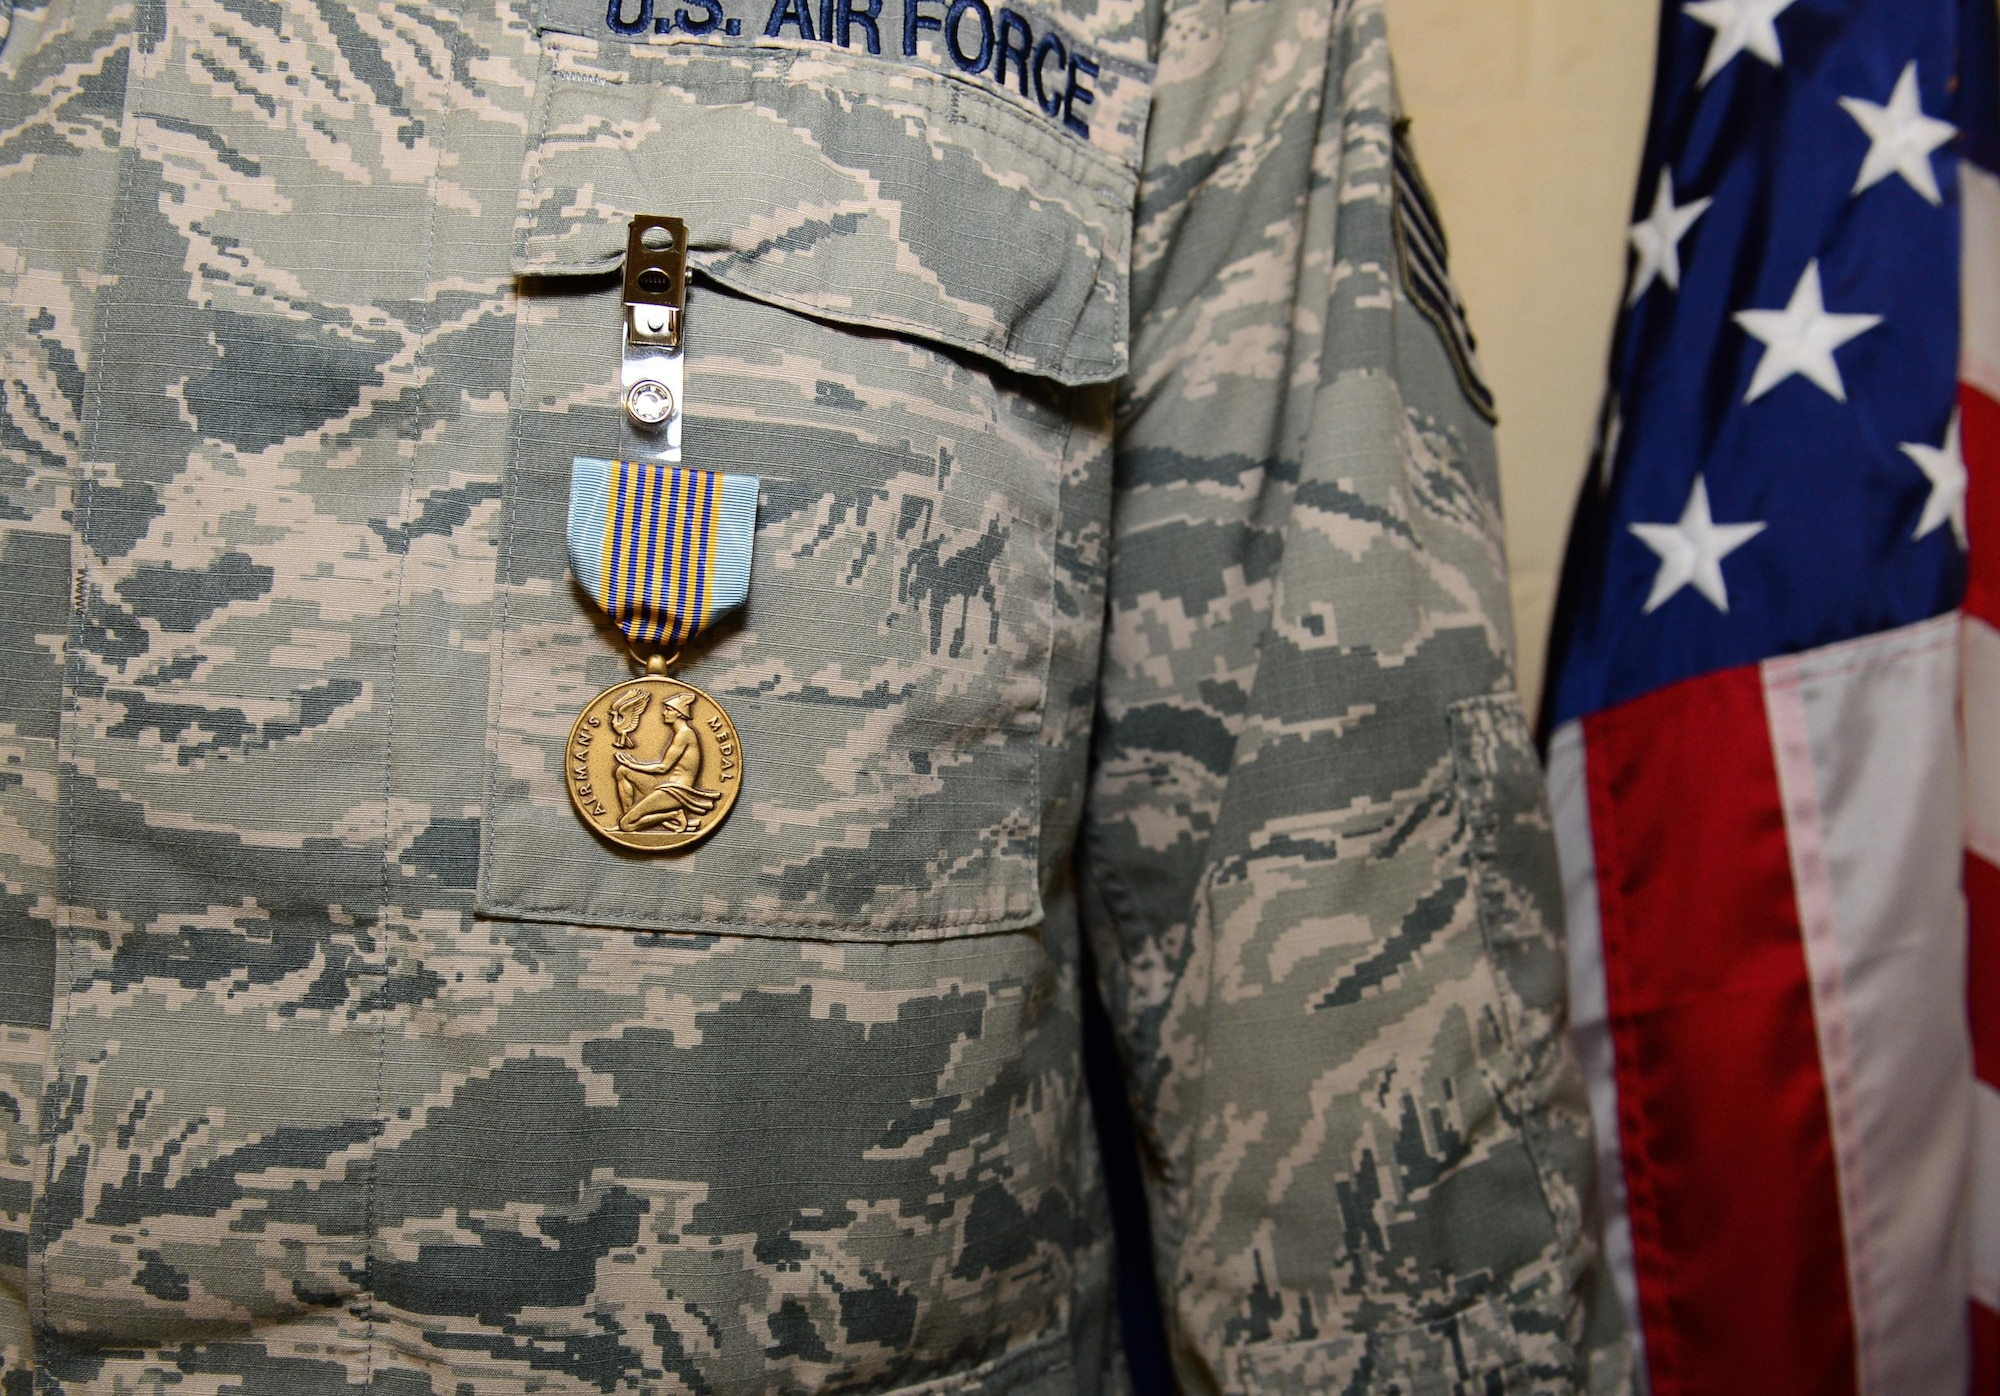 Staff Sgt. Greggory Swarz displays his Airman's Medal after a ceremony March 13, 2015, at Royal Air Force Lakenheath, England. Swarz was recognized for his heroic actions on Jan. 26, 2015, when he saved the lives of three French airmen after a Hellenic Air Force F-16 crashed into the parking ramp at Los Llanos Air Base, Spain, during Tactical Leadership Program 15-1. Swarz is a 492nd Aircraft Maintenance Unit electrical environmental systems specialist (U.S. Air Force photo/Airman 1st Class Erin R. Babis)